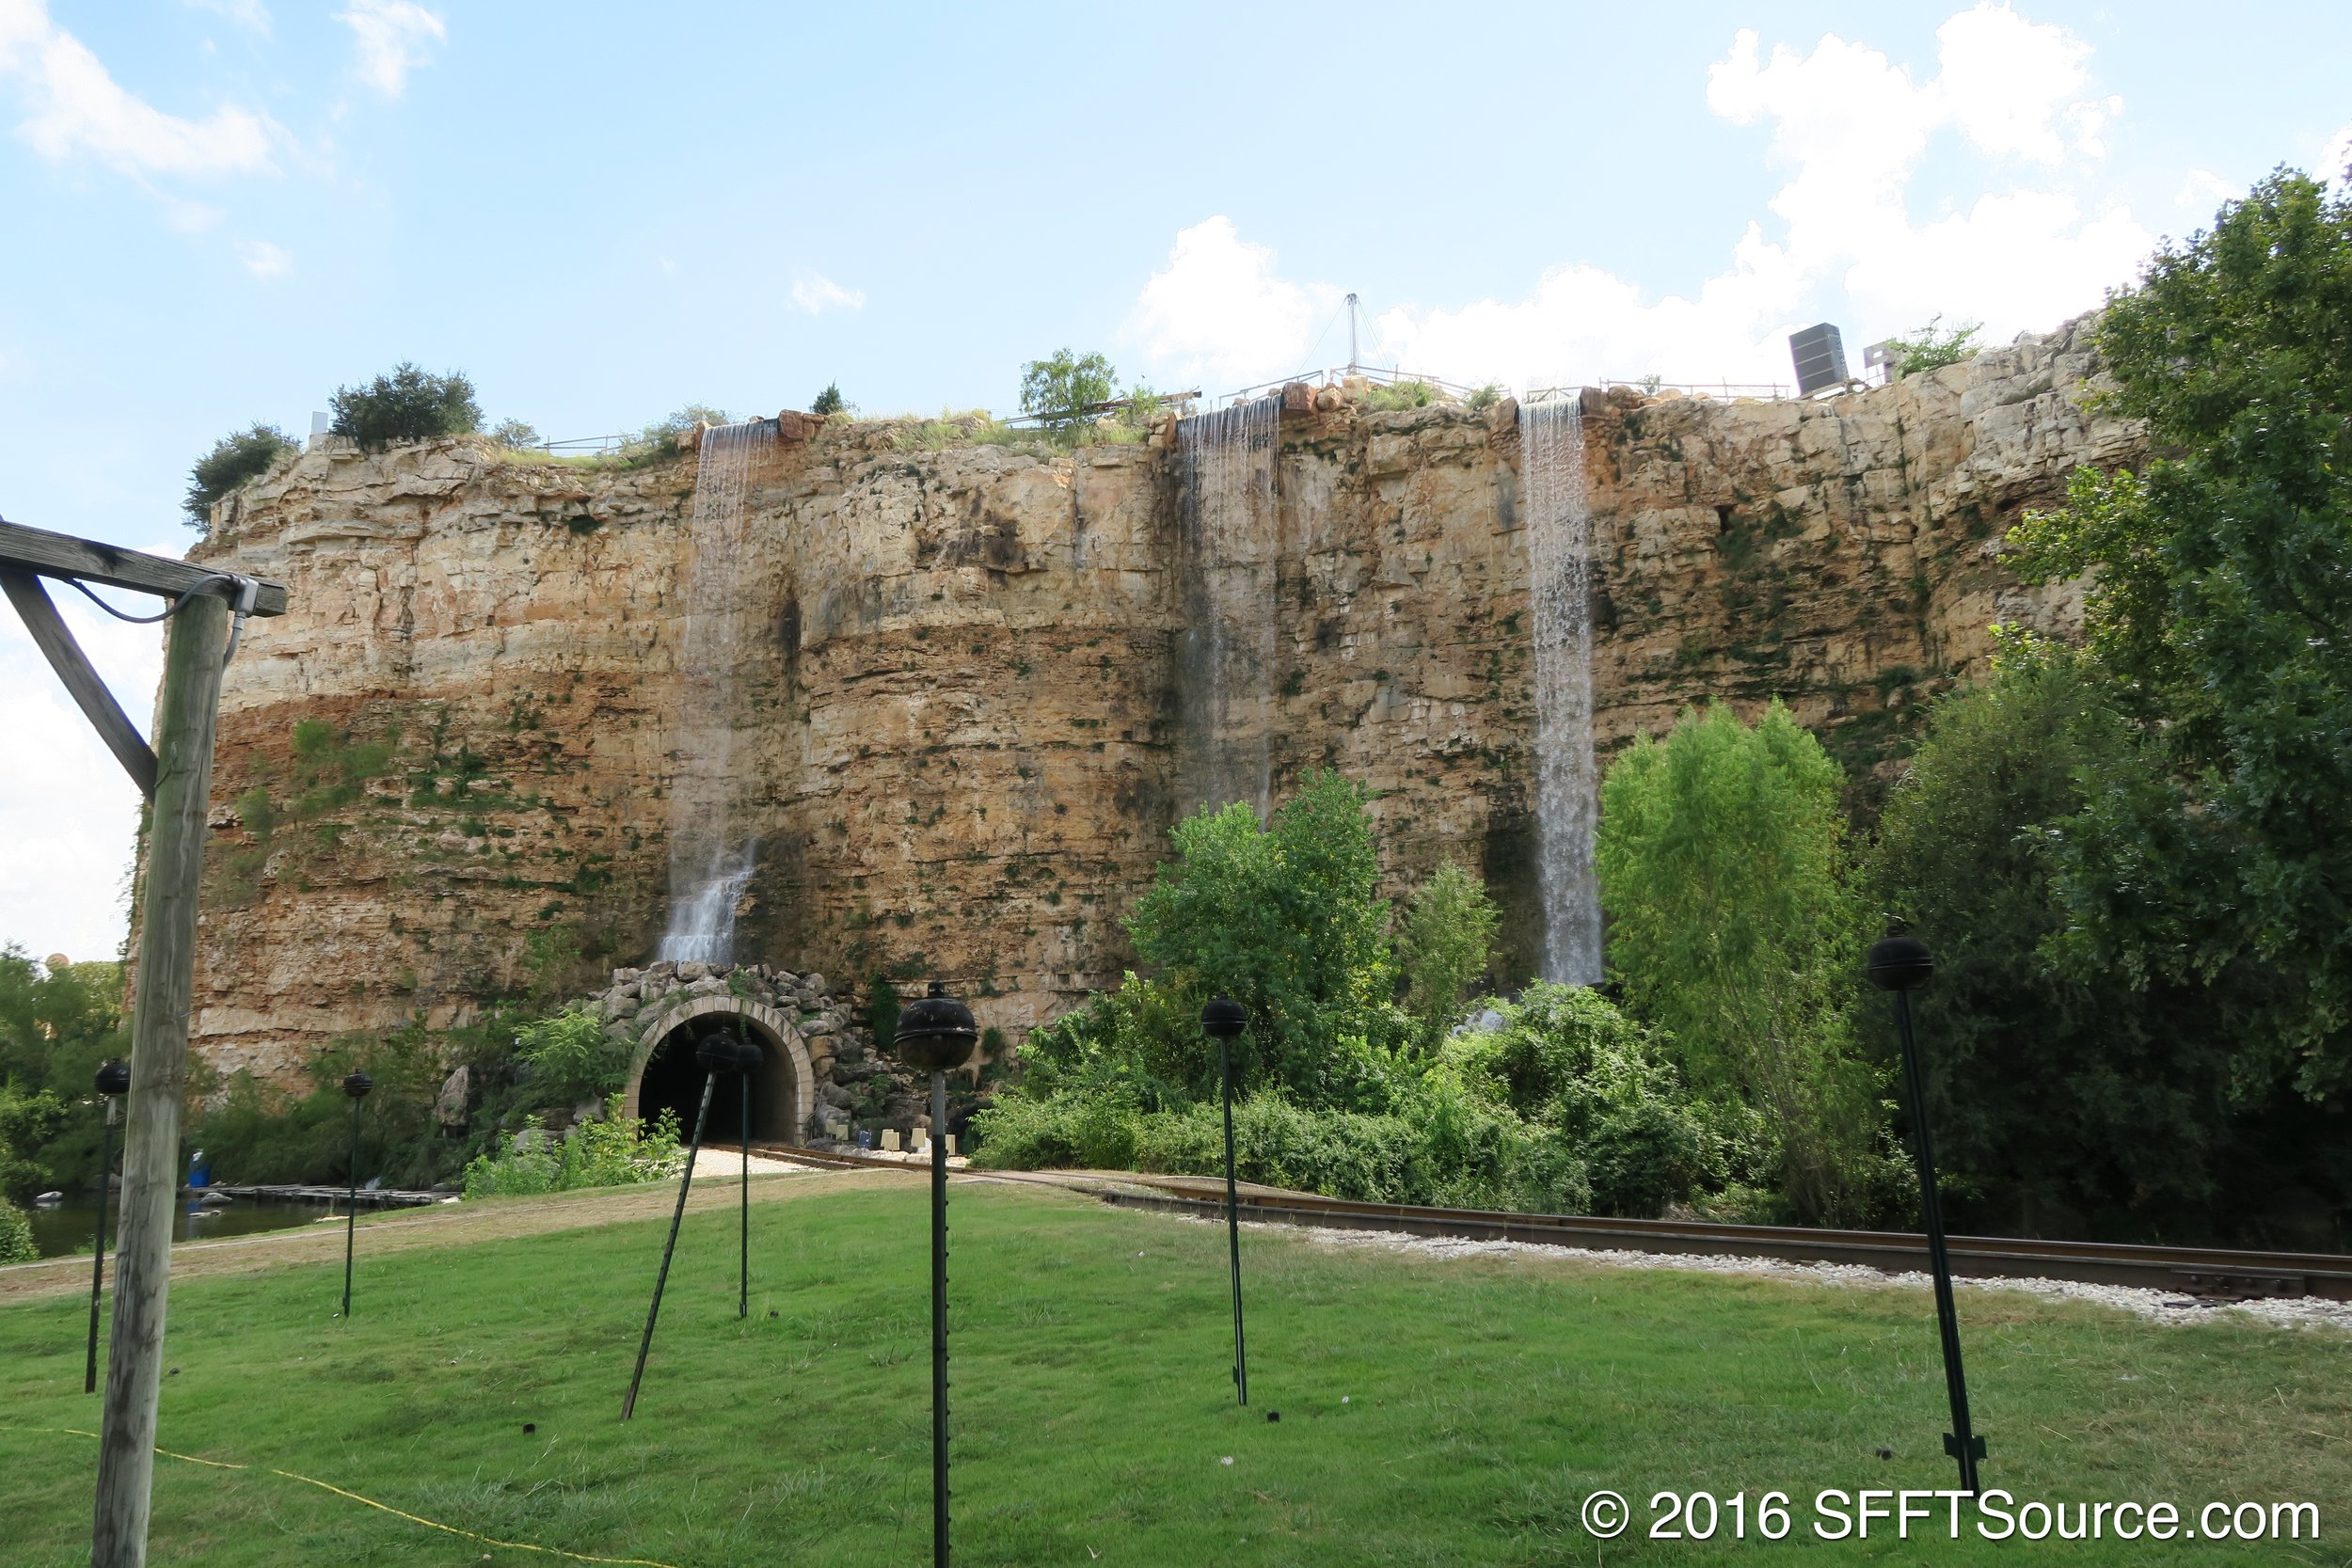 The quarry wall with fountain features.